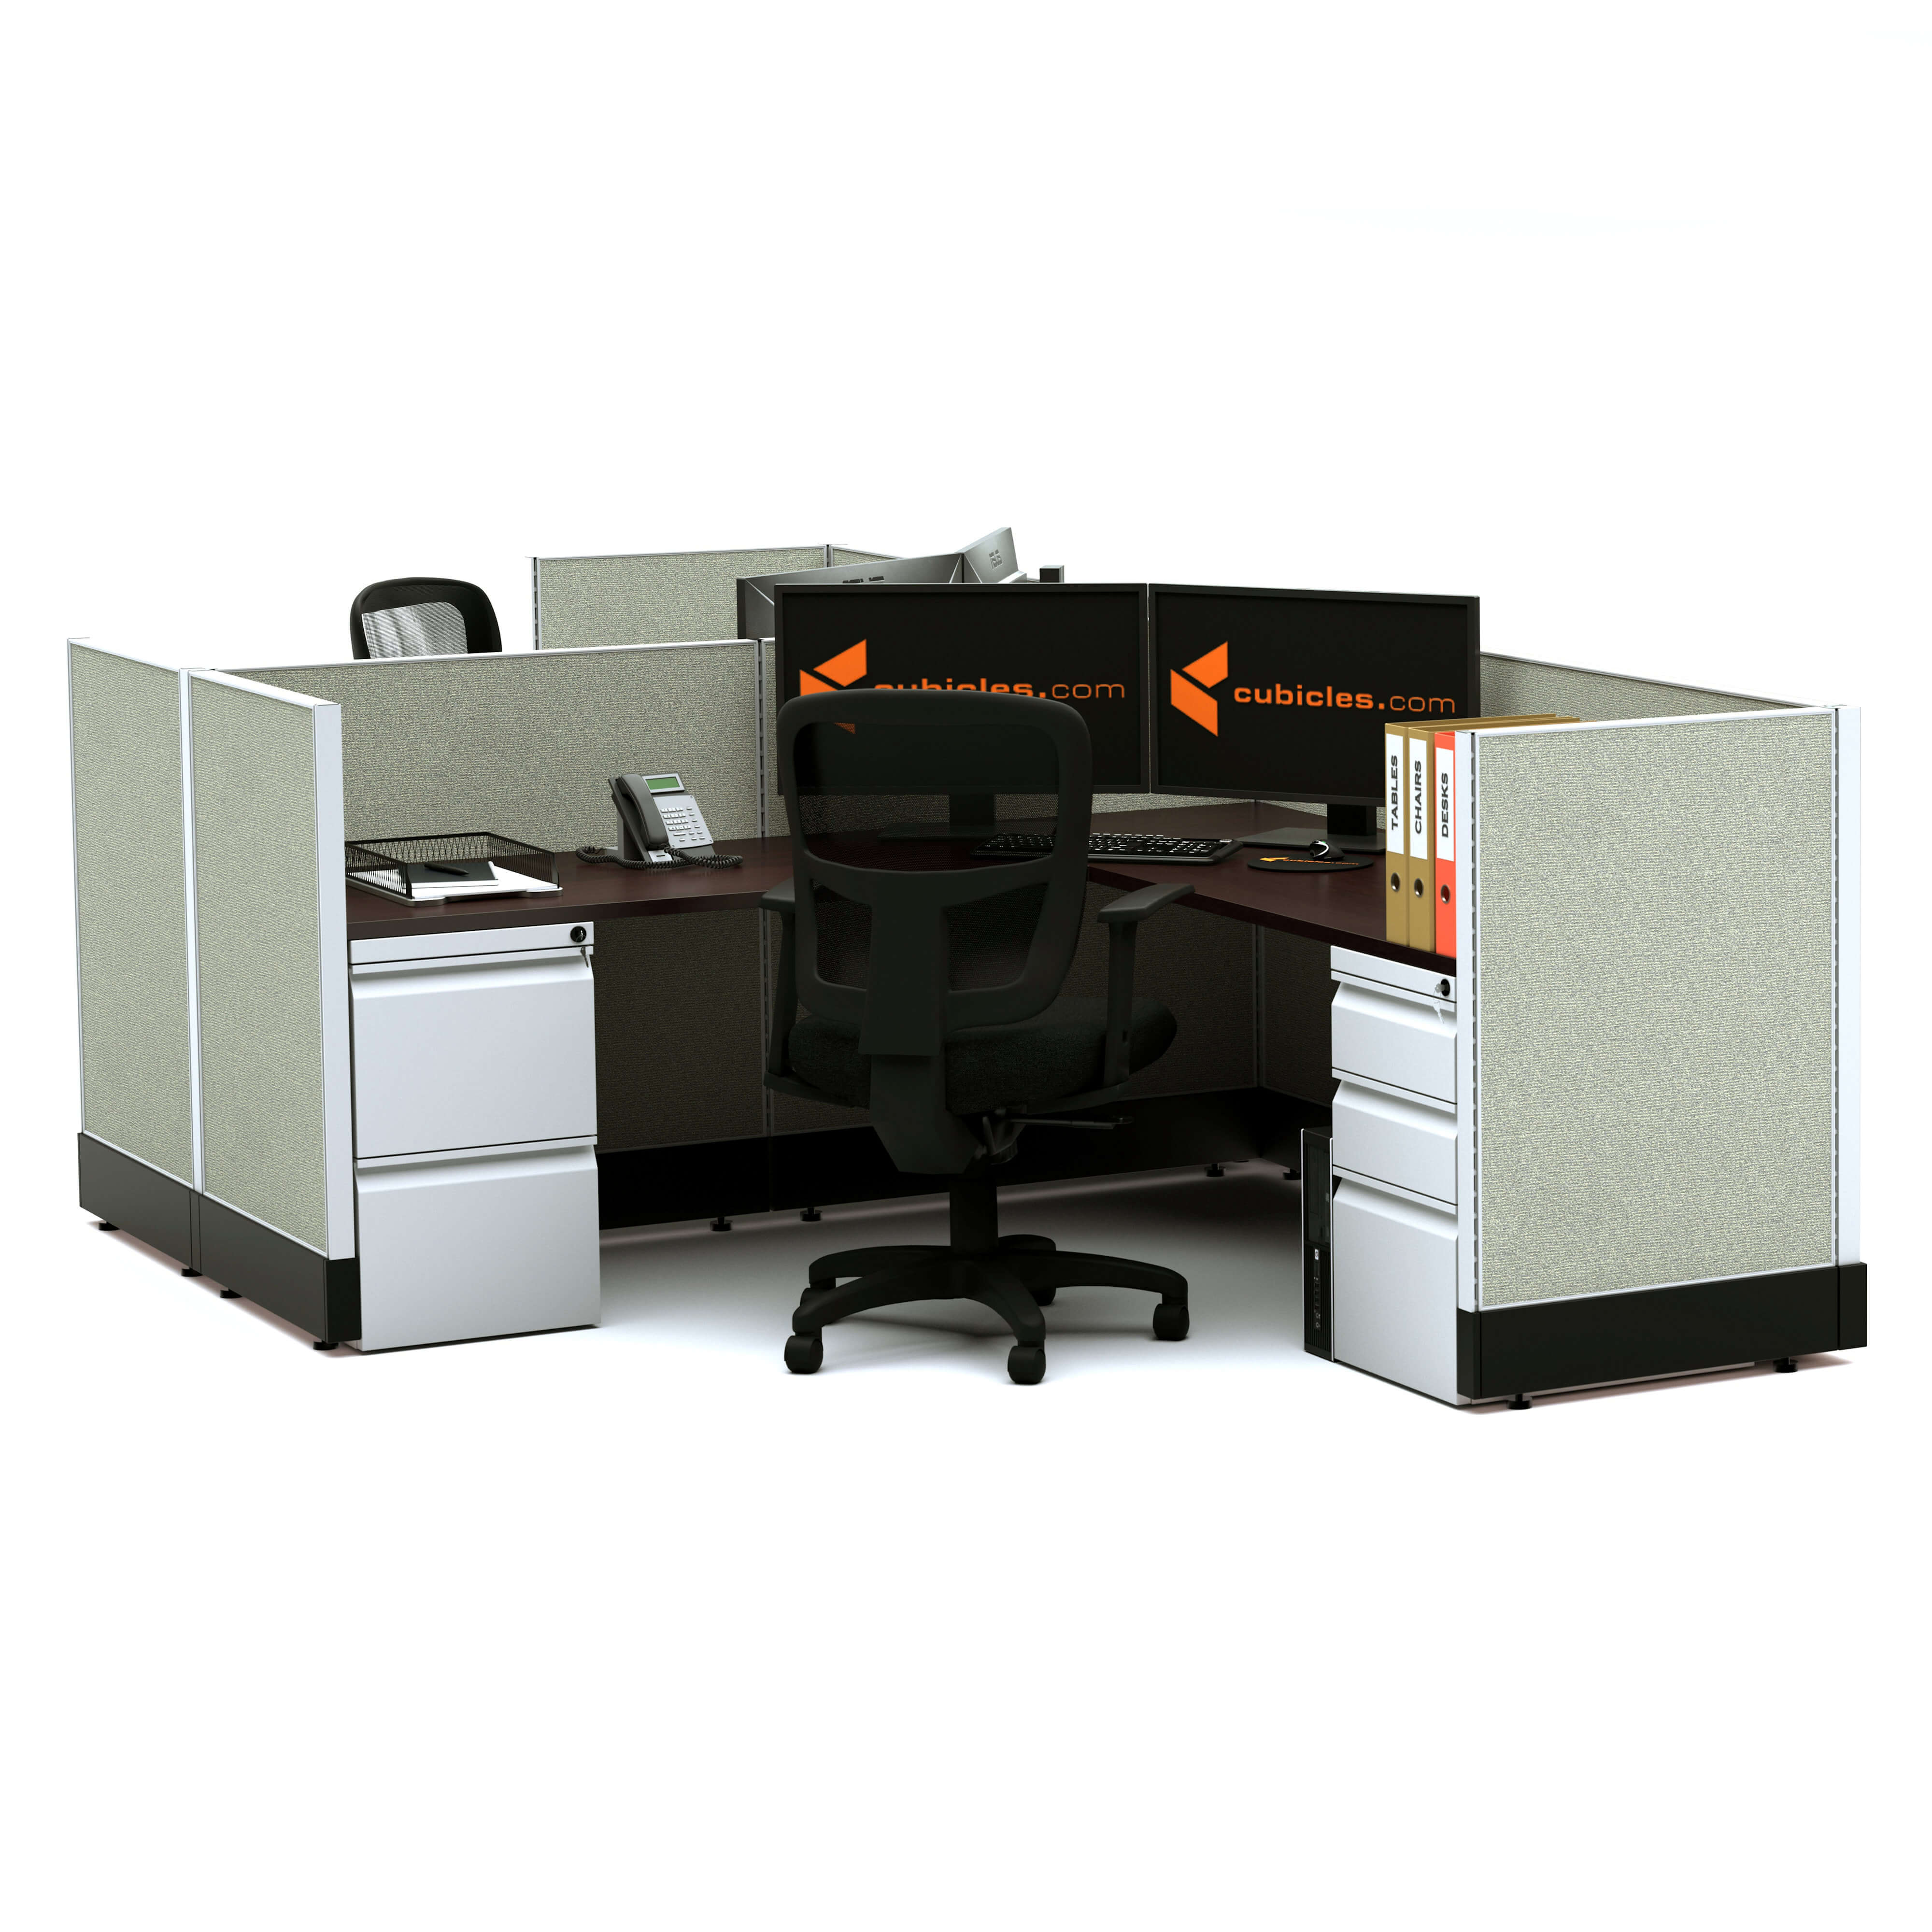 modular-office-furniture-system-furniture-39-2pack-clustered-powered.jpg